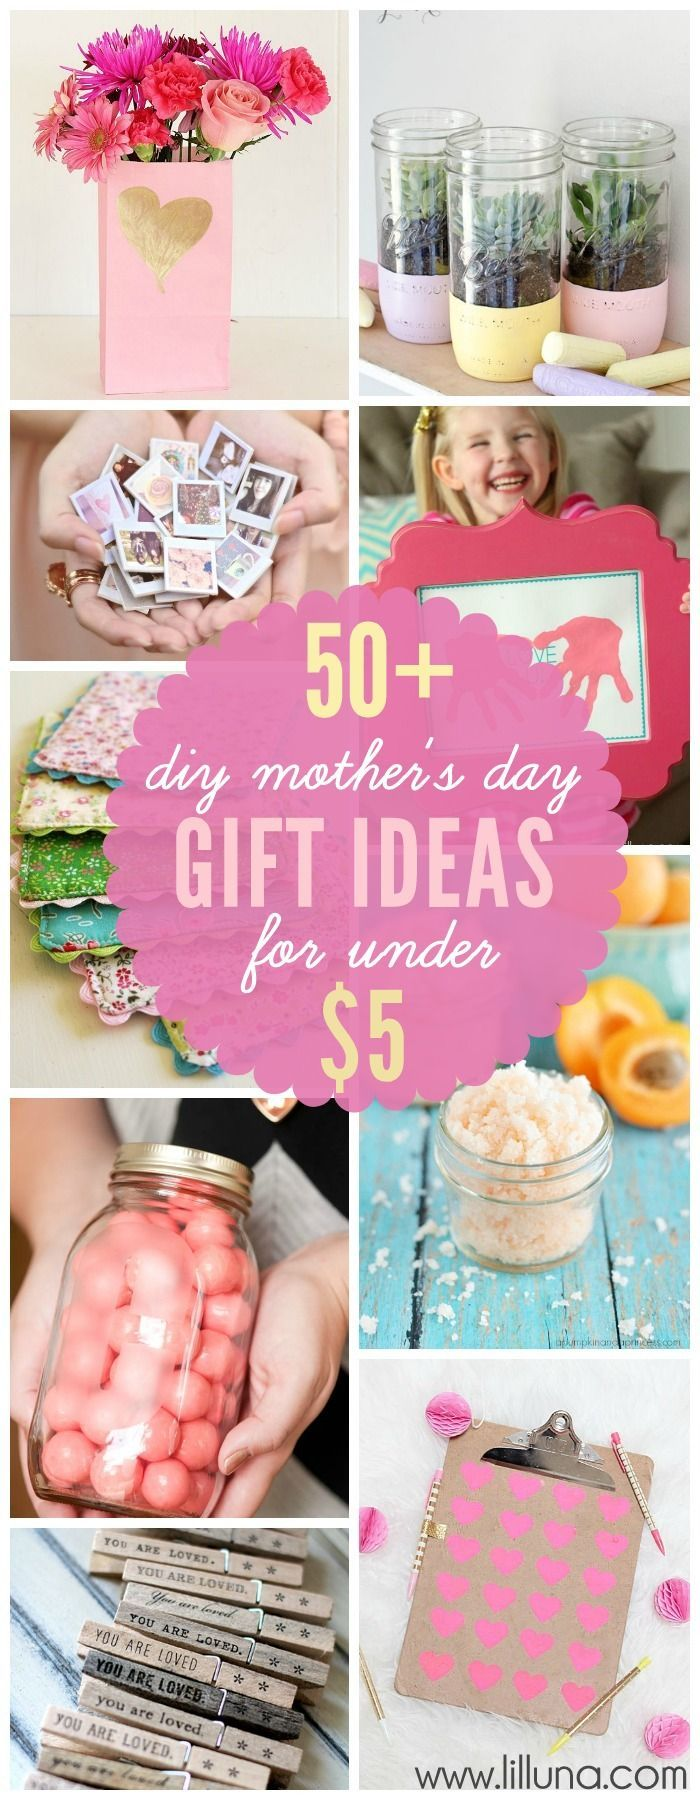 Bulk Mothers Day Gifts For Church Diy Mother 39 s Day Gift Ideas